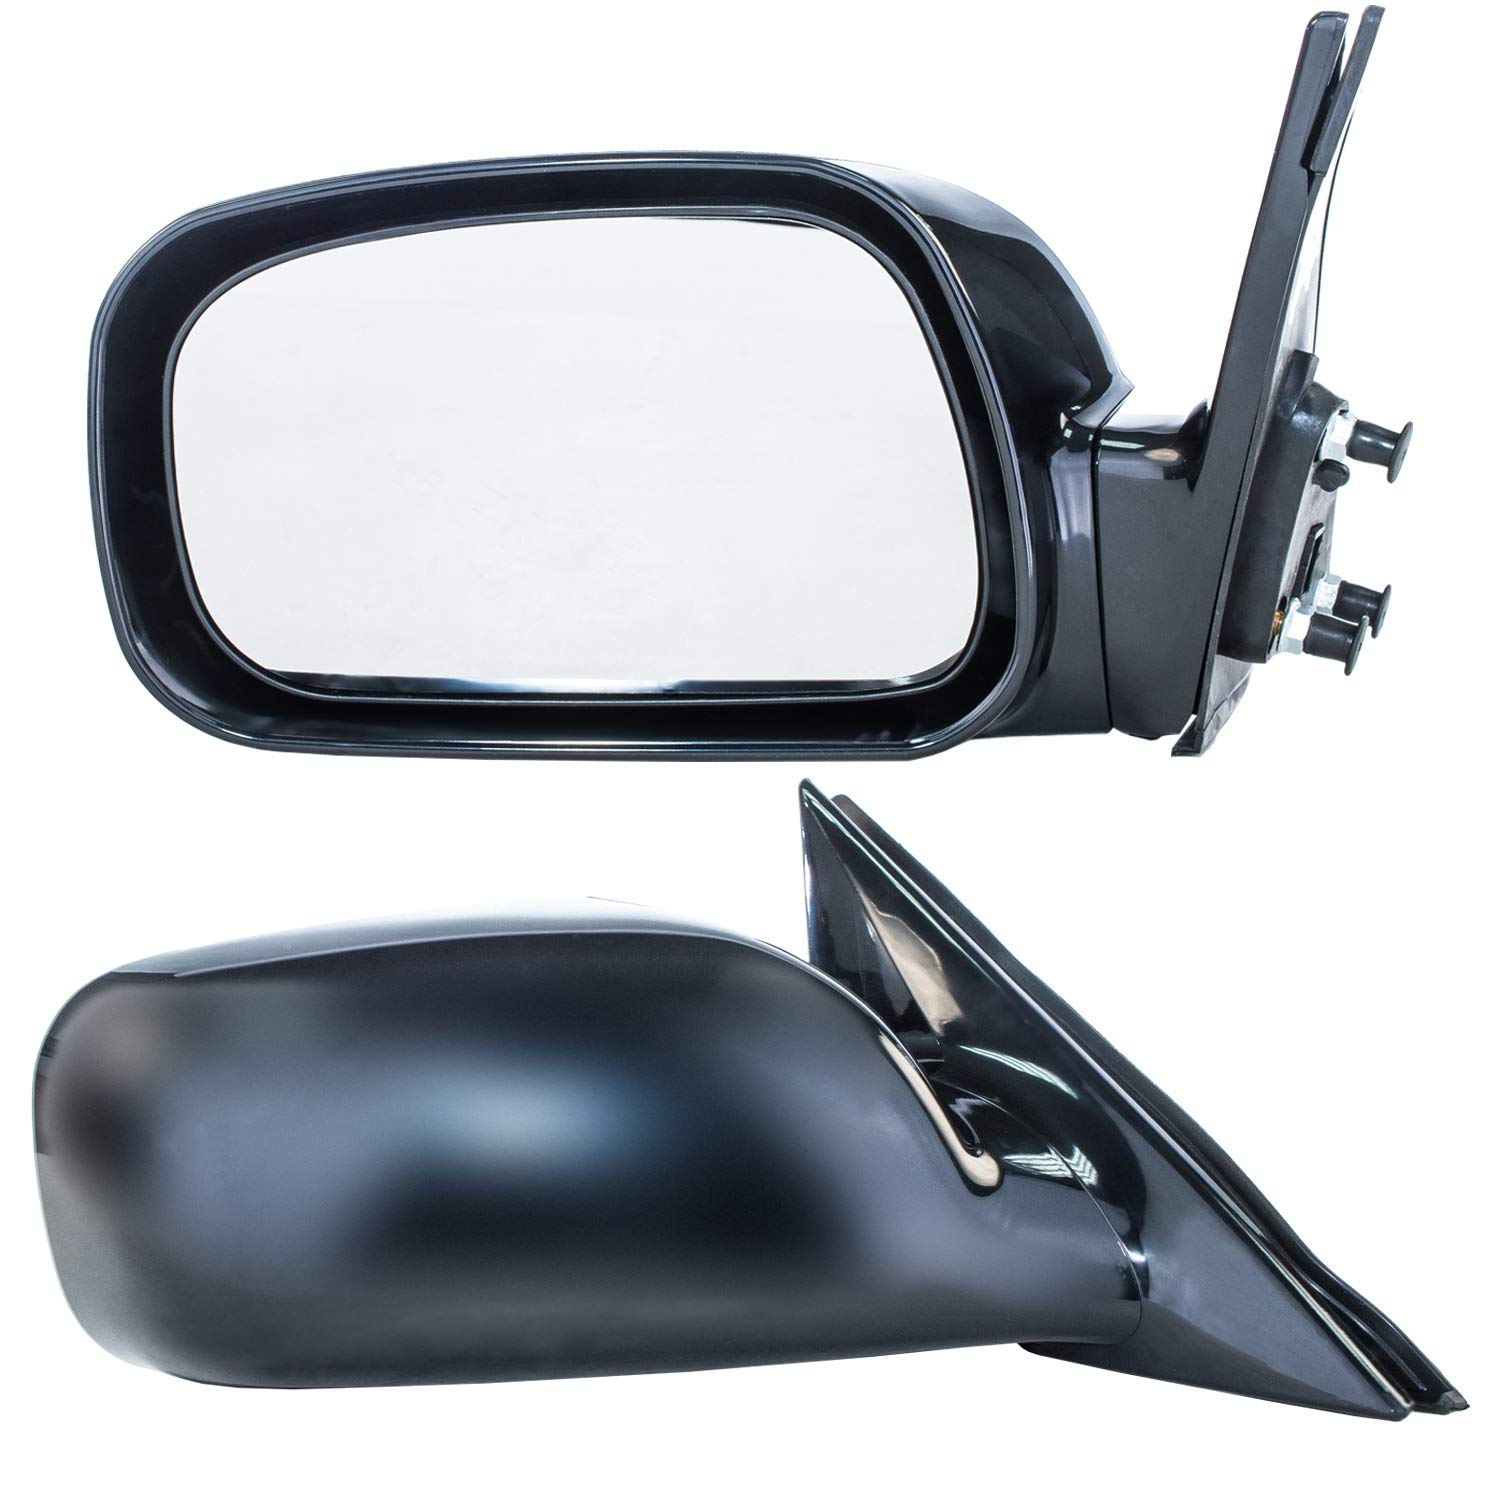 Dependable Direct Driver and Passenger Side Unpainted Non-Heated Non-Folding Door Mirrors for USA Built Toyota Camry (2002 2003 2004 2005 2006)